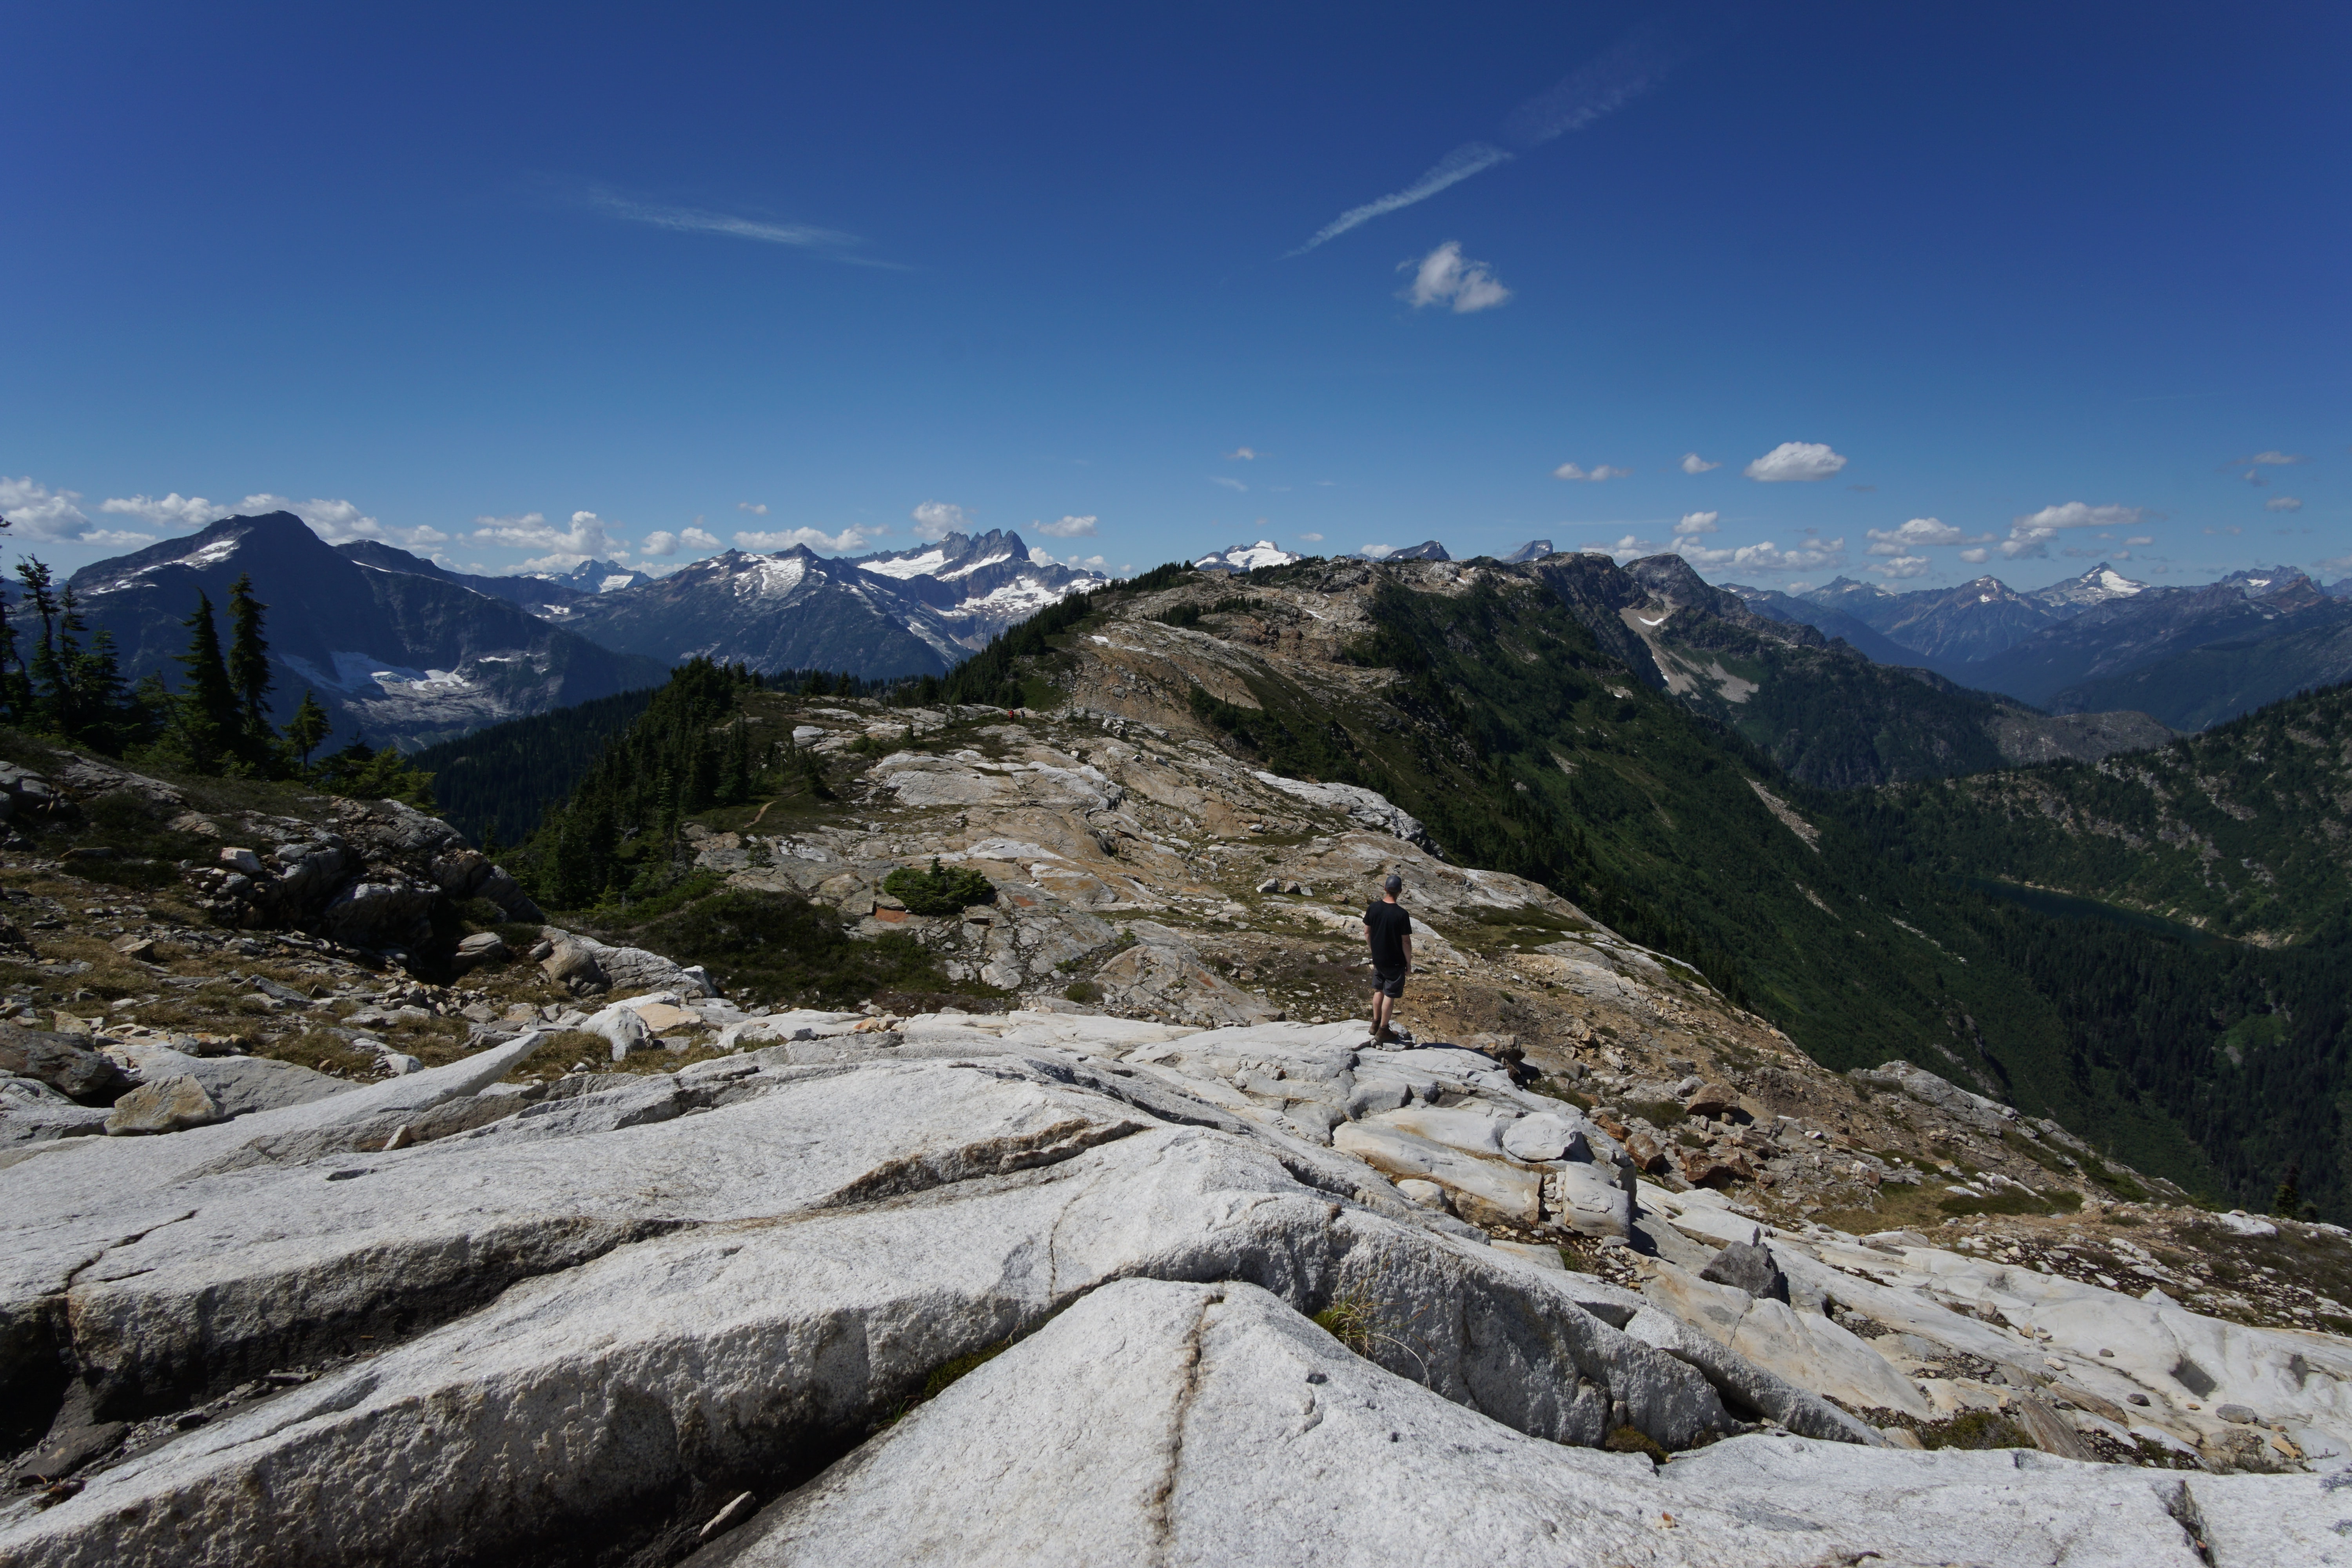 person standing on rock facing mountains during daytime